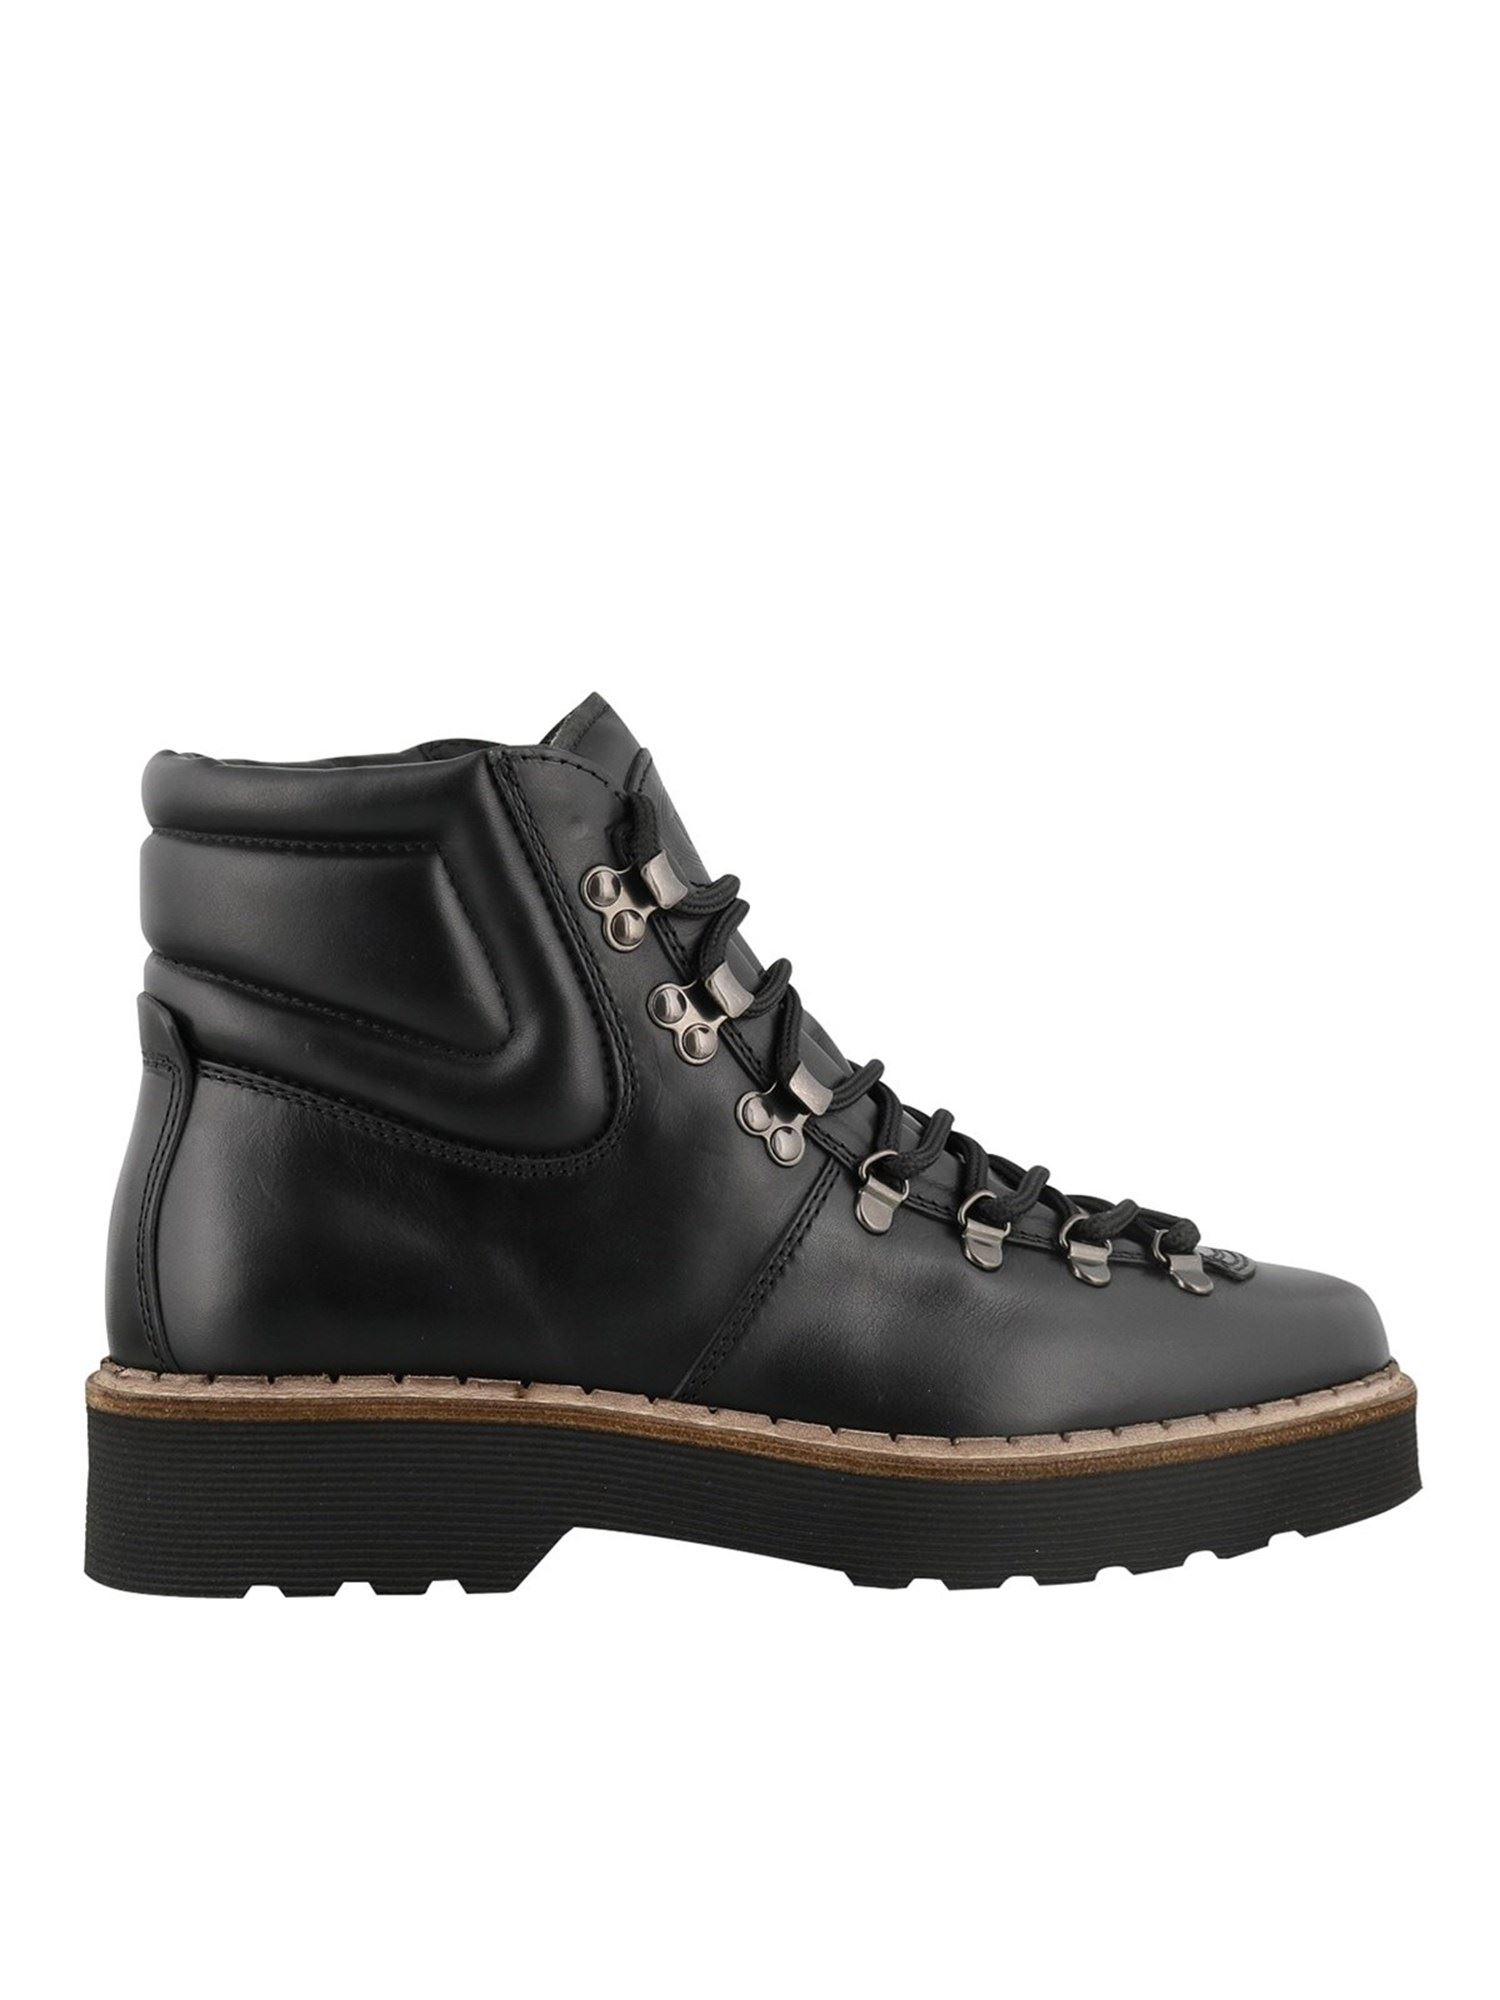 TOD'S LEATHER LACE-UP ANKLE BOOTS IN BLACK